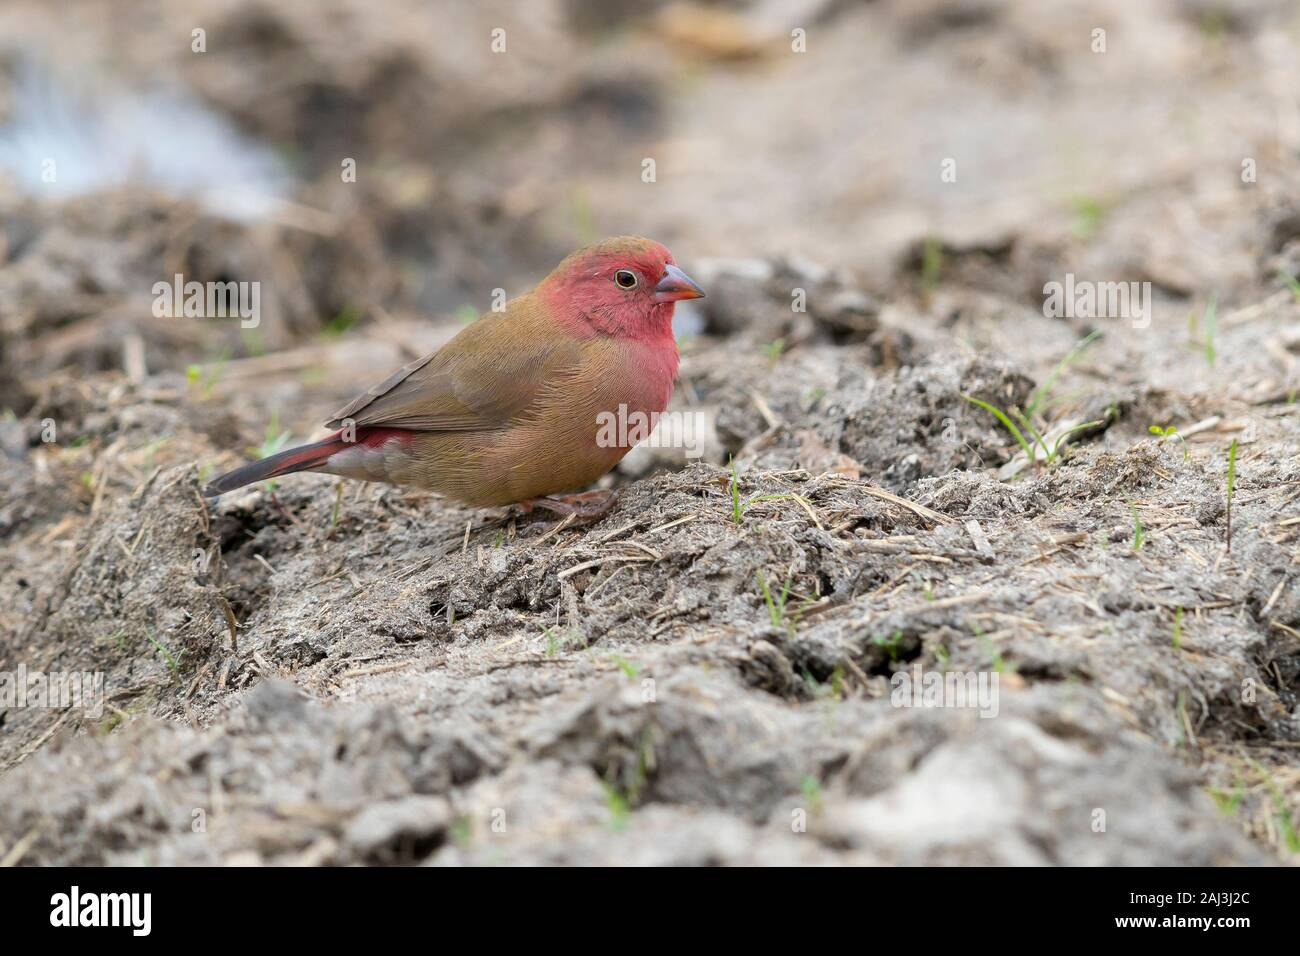 Red-billed Firefinch (Lagonosticta senegala), adult male standing on the ground, Mpumalanga, South Africa Stock Photo